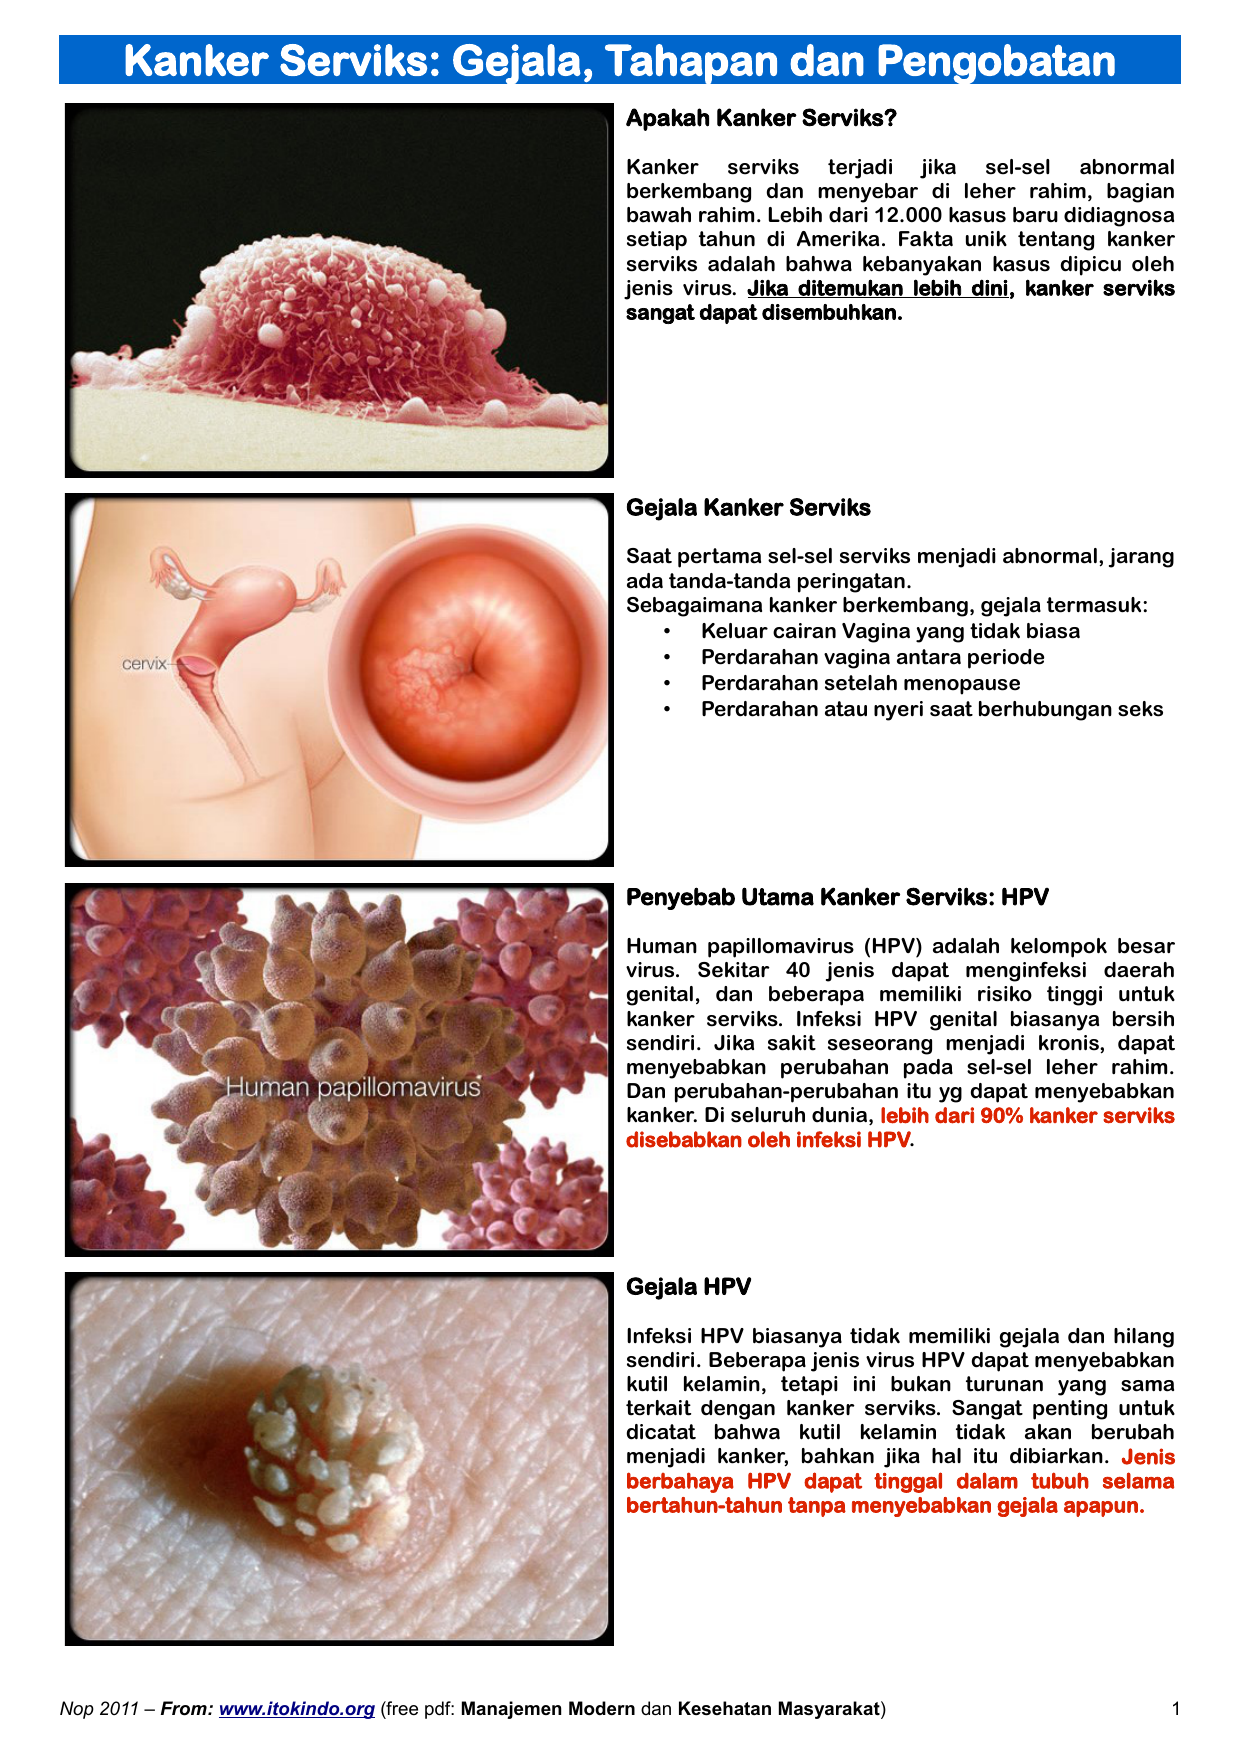 hpv injection meaning papillomavirus cancer bouche